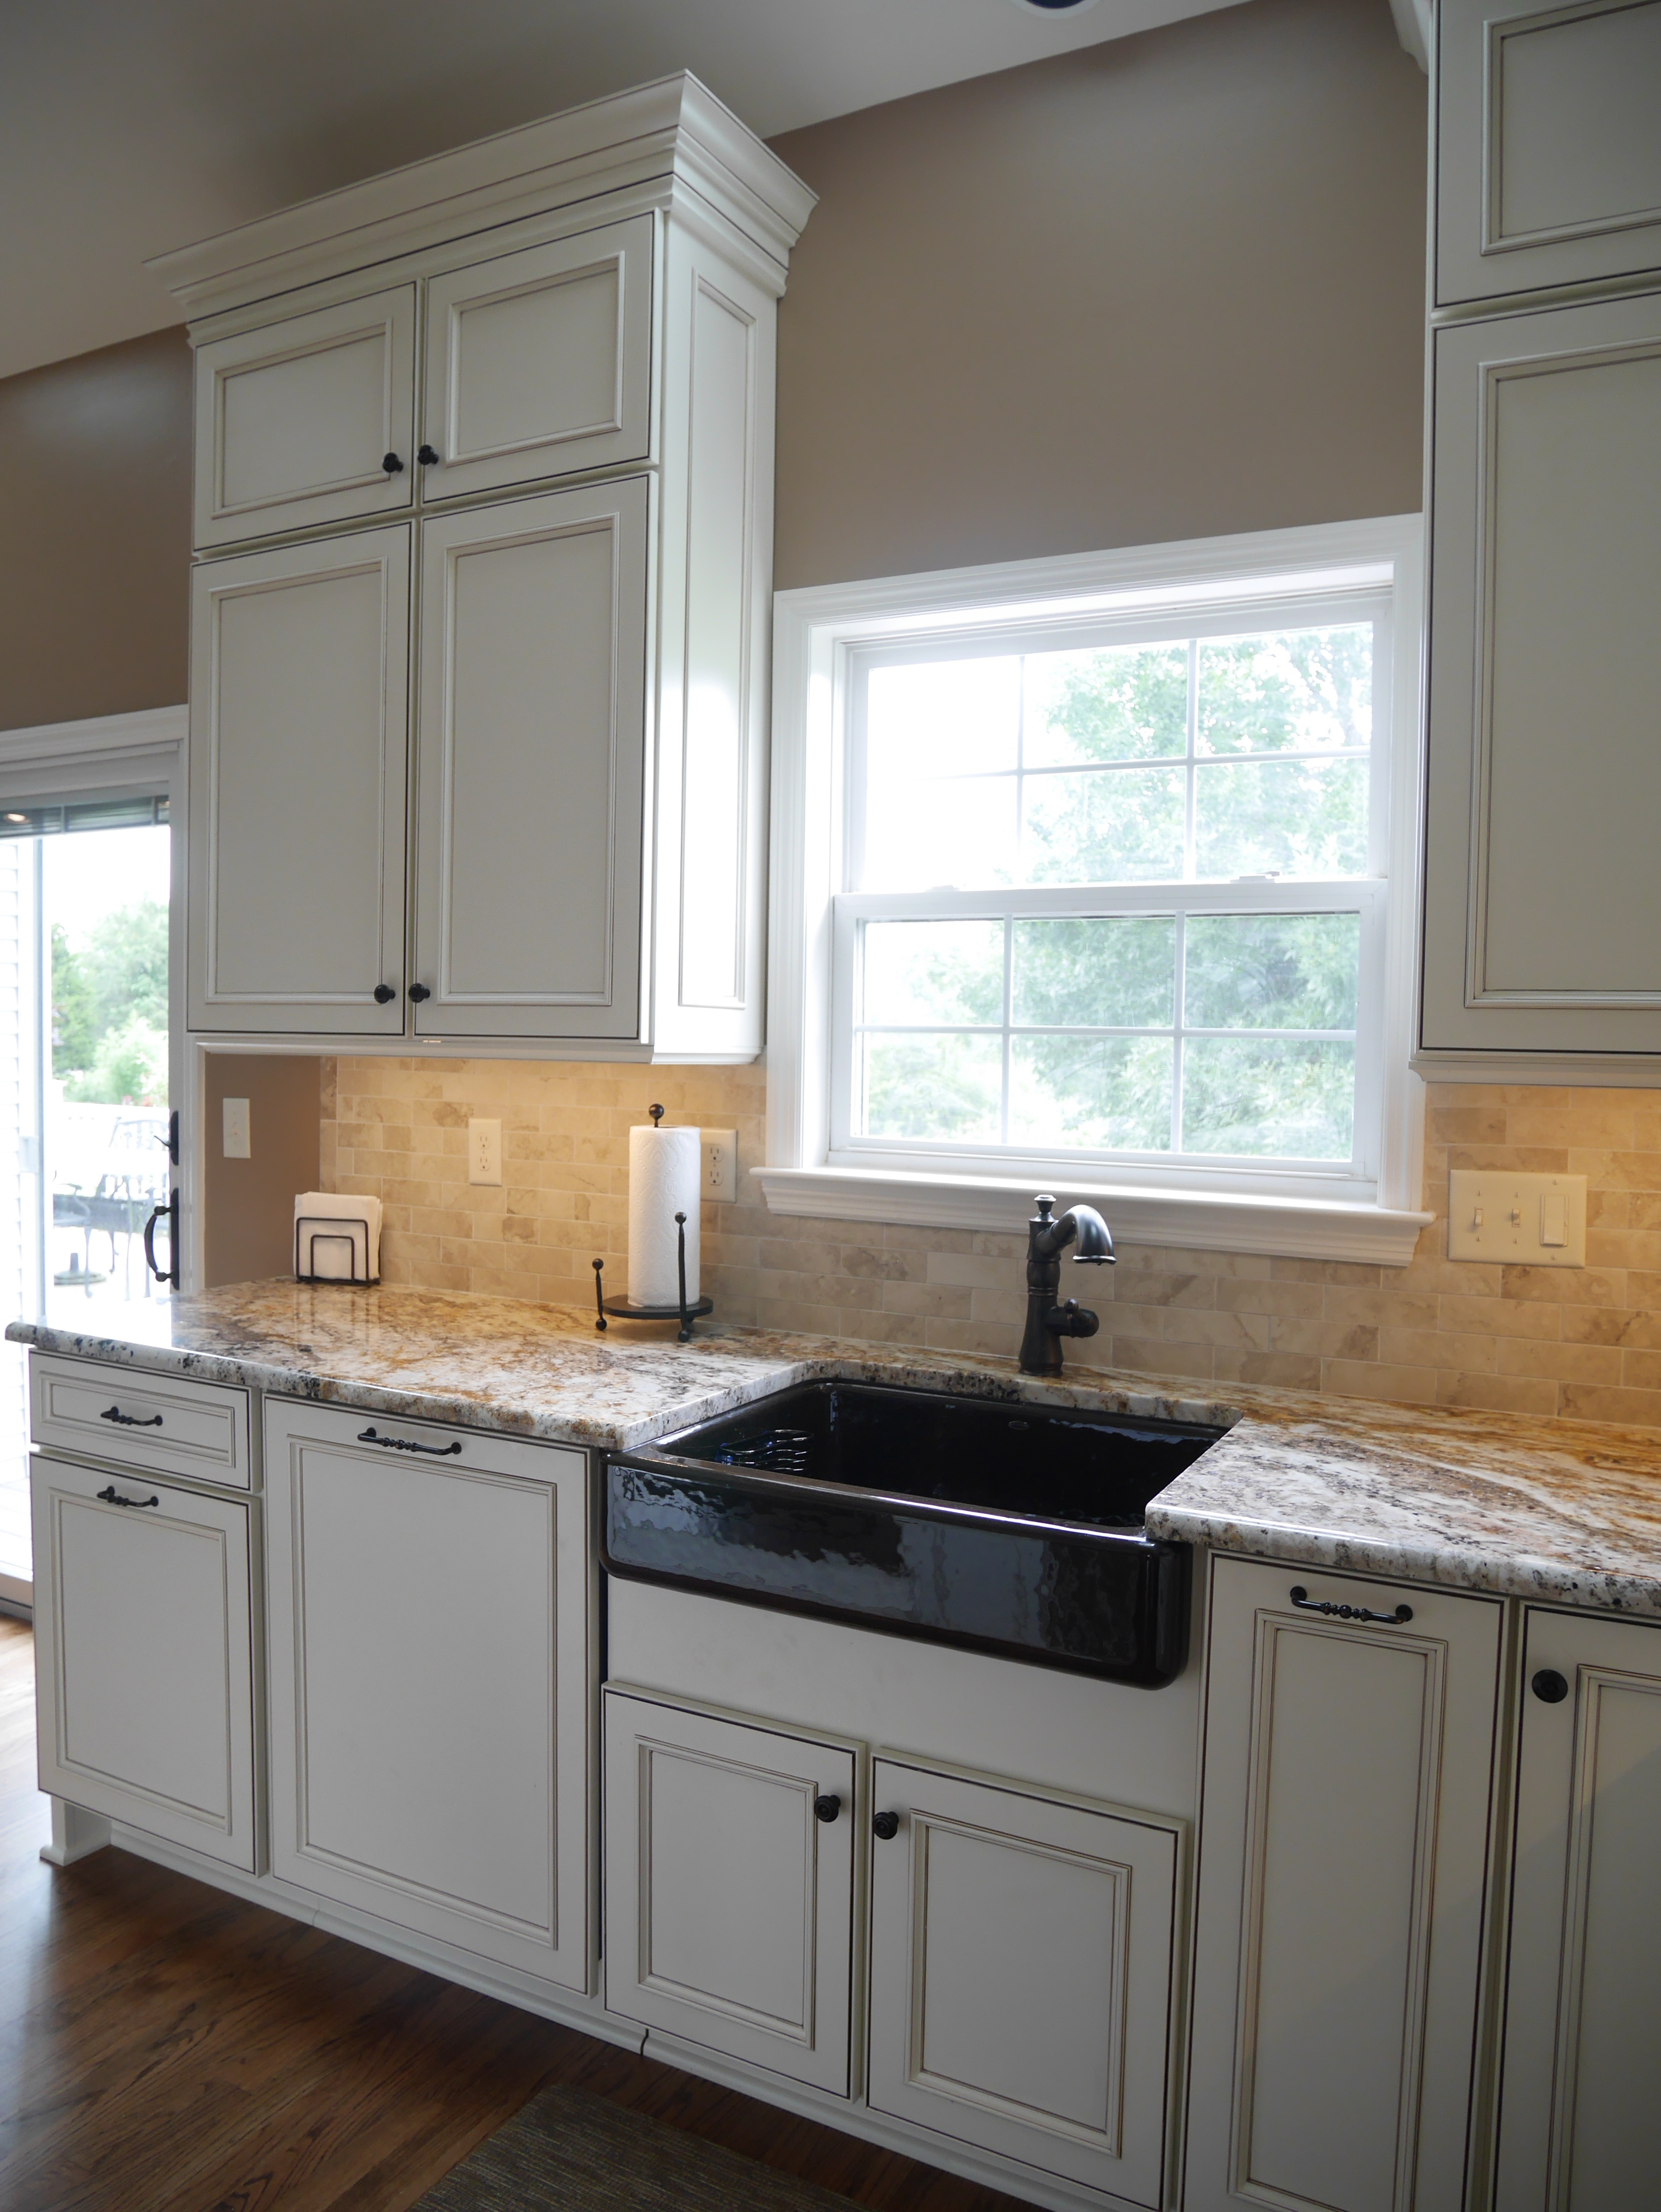 Cabinet Installation in New Jersey